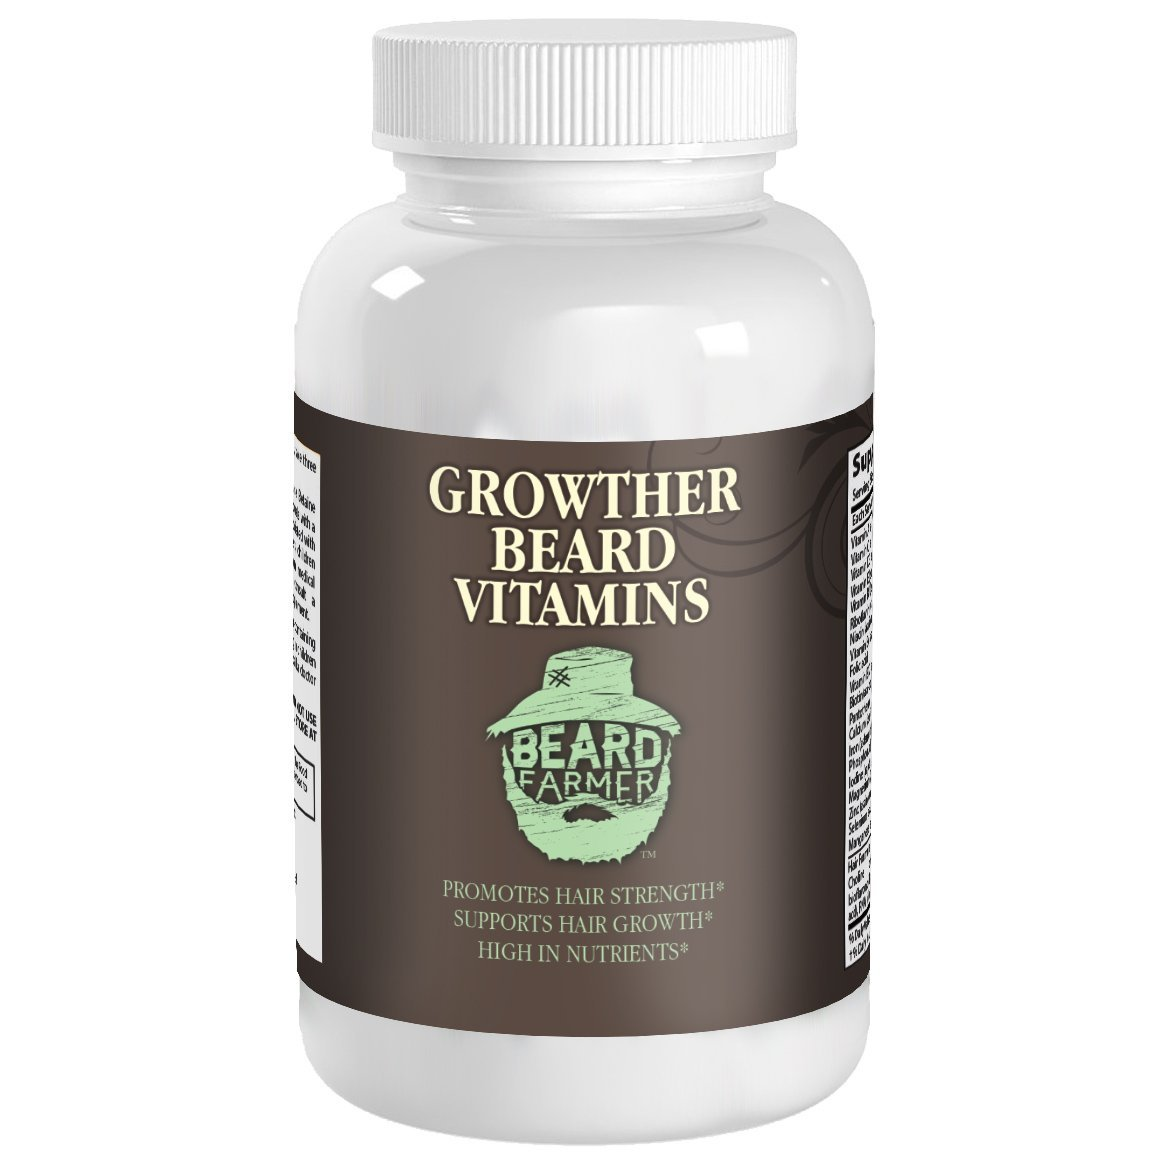 Growther Beard Oil Customer Reviews